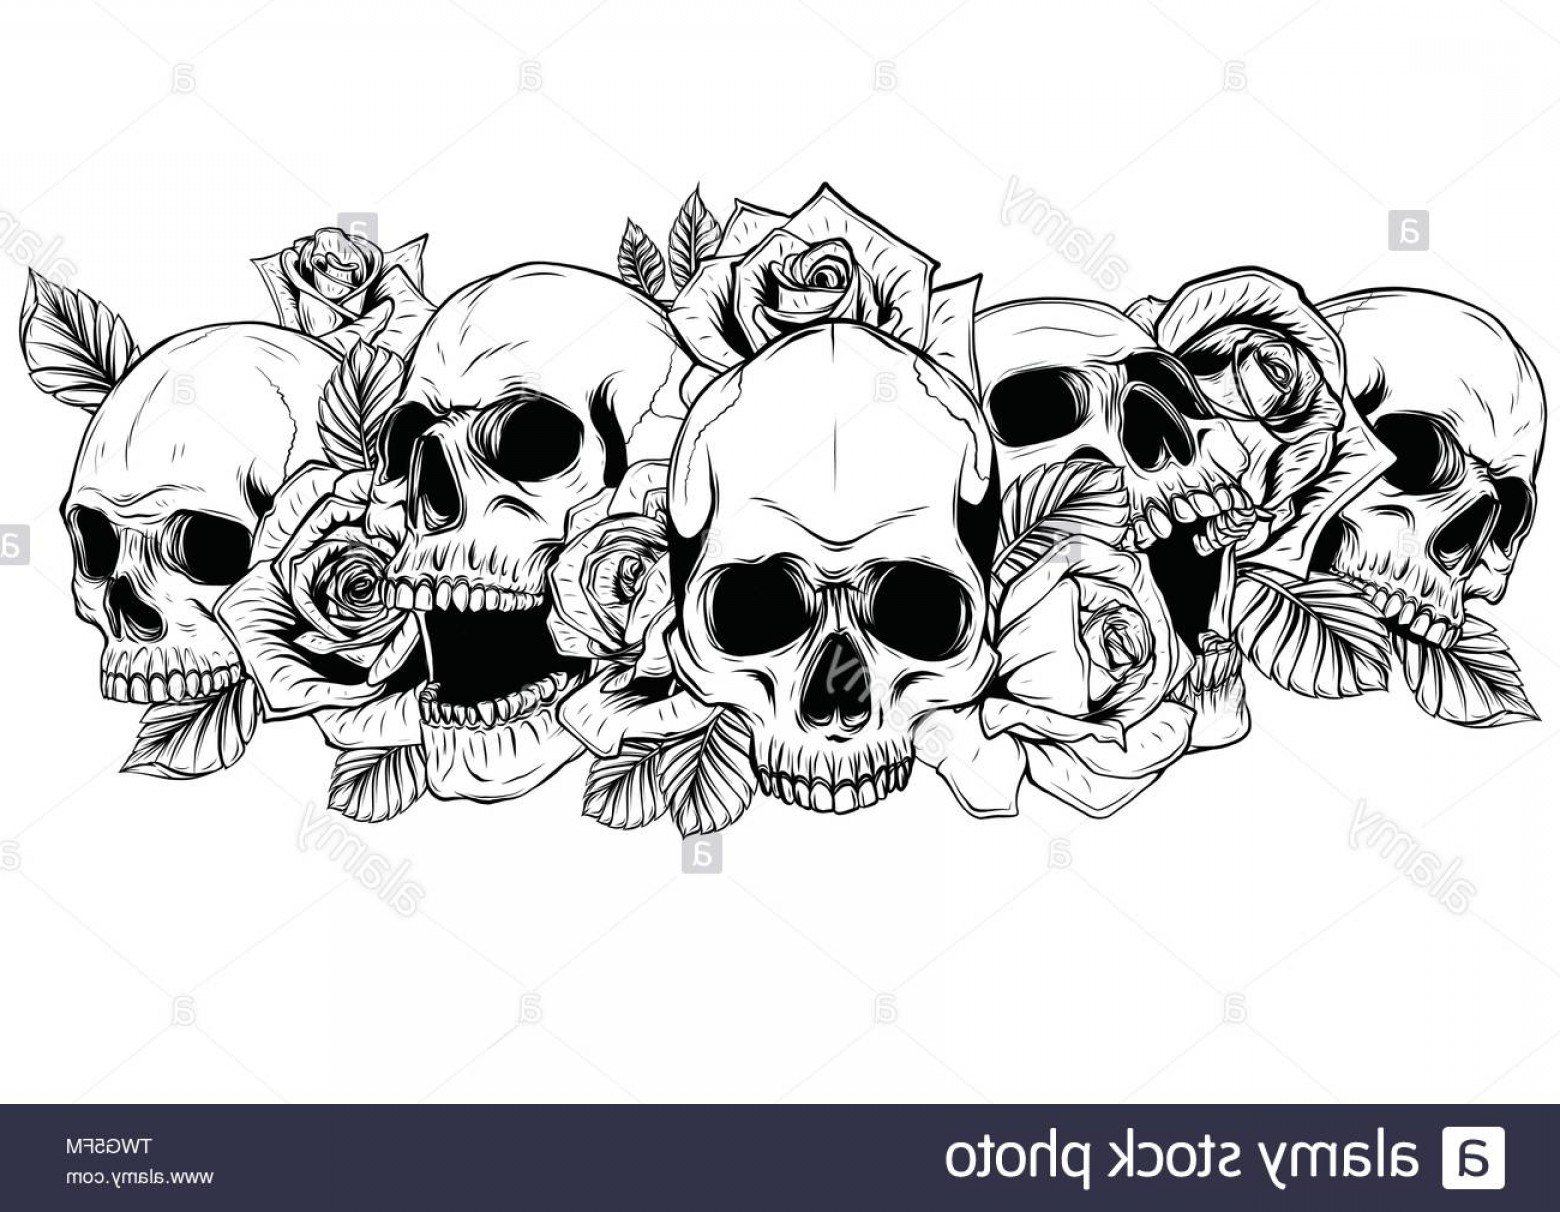 Detailed Tattoo Vector Images: Skull With Centifolia Roses Tattoo By Hand Drawingtattoo Art Highly Detailed In Japanese Line Art Style Image